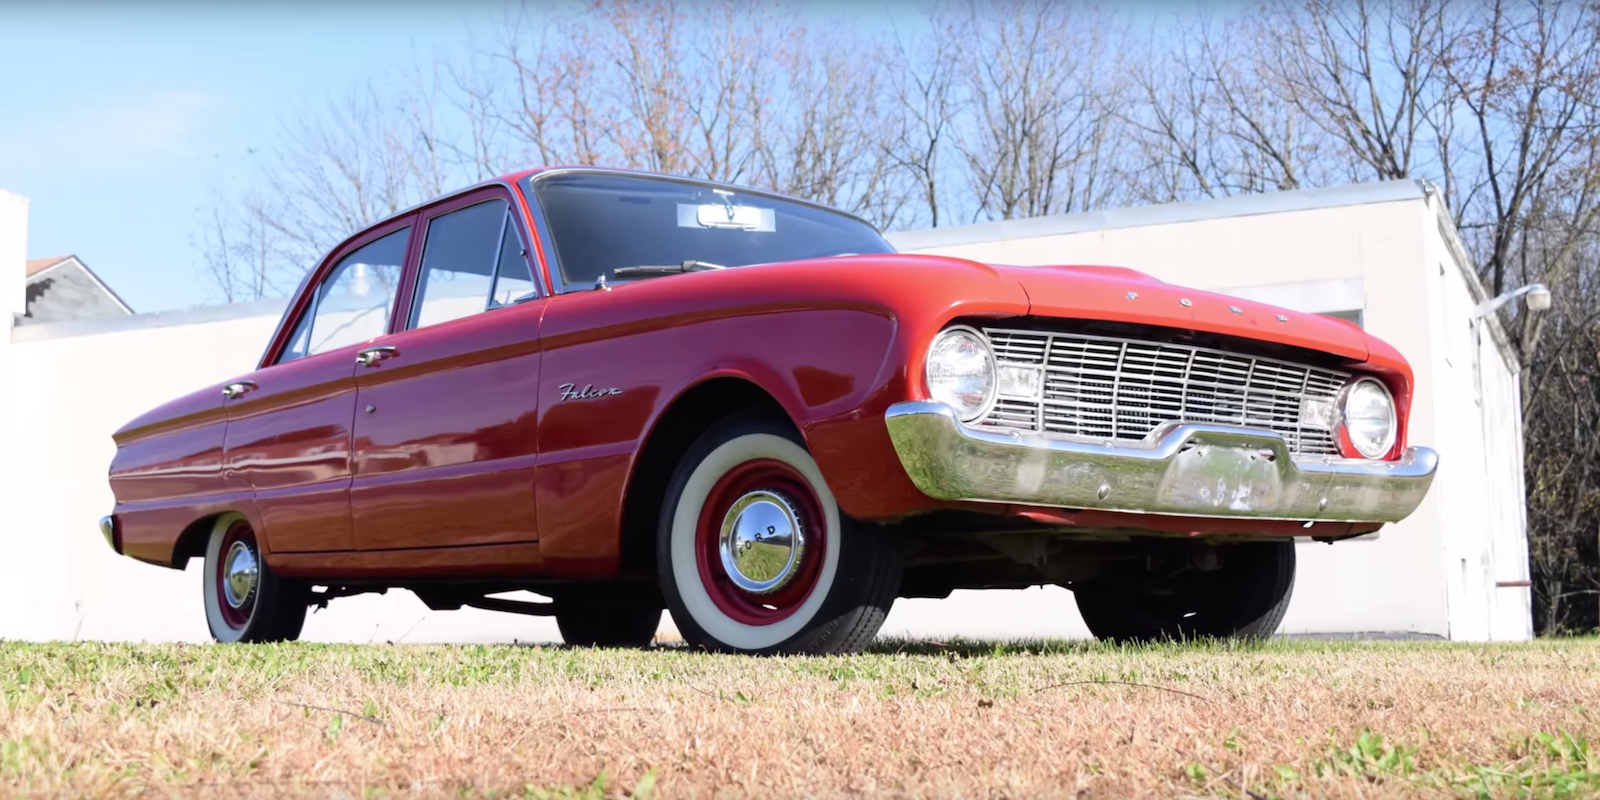 A Stock 1960 Ford Falcon Is a Different Sort of Classic Car